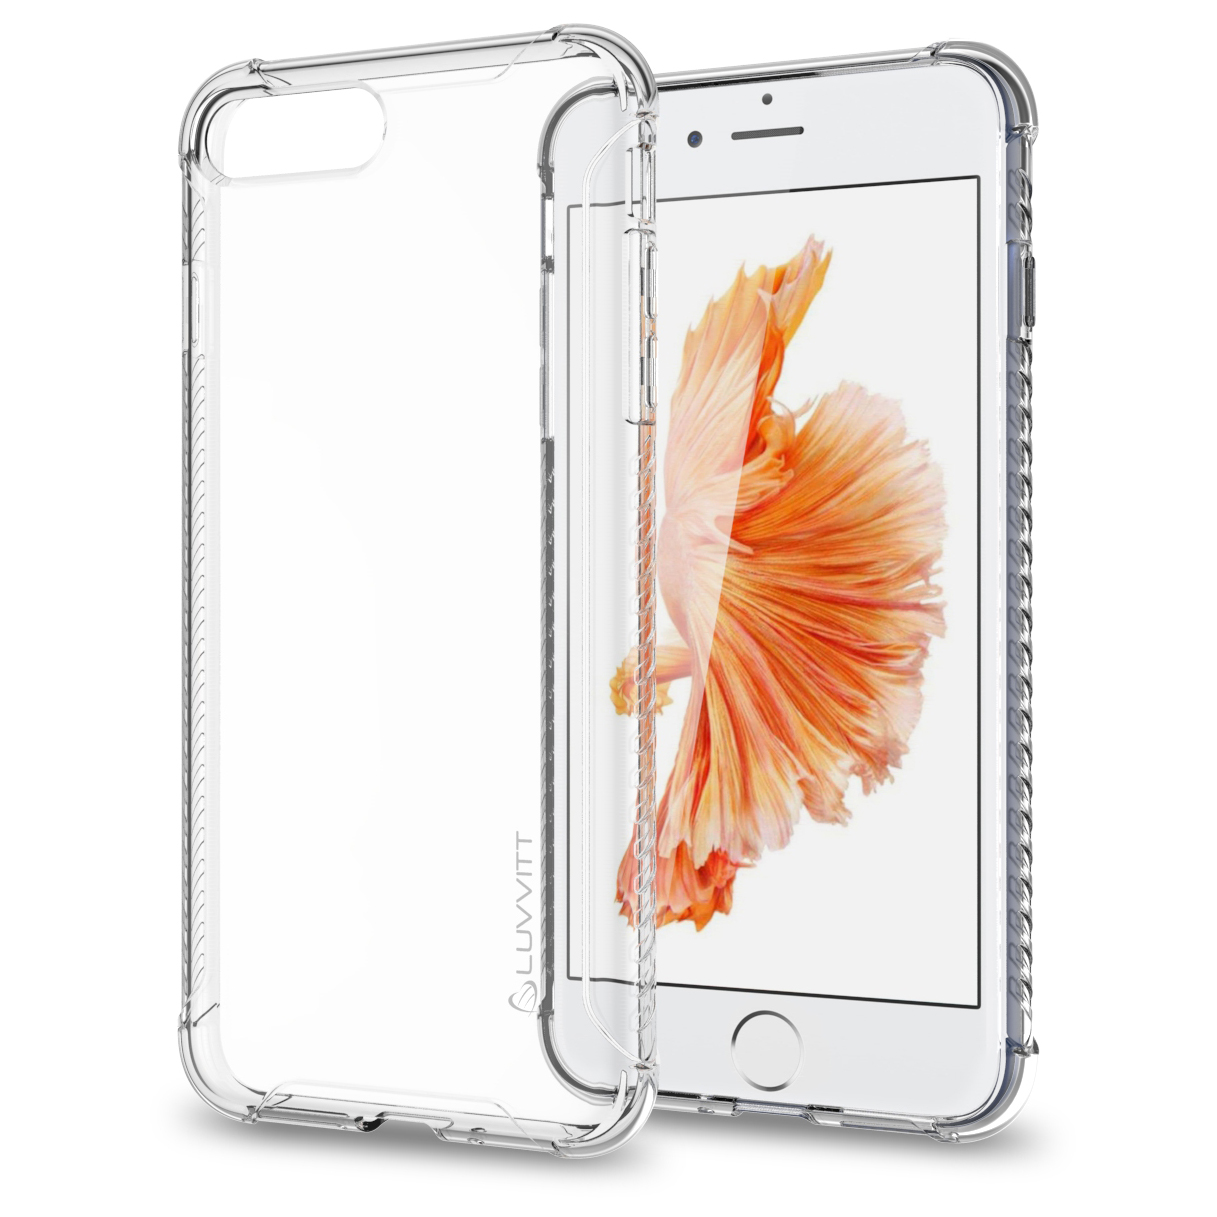 iPhone 7 Pro Case, LUVVITT [Clear Grip] Soft Slim Flexible TPU Back Cover Transparent Rubber Case for Apple iPhone 7 Pro - Clear